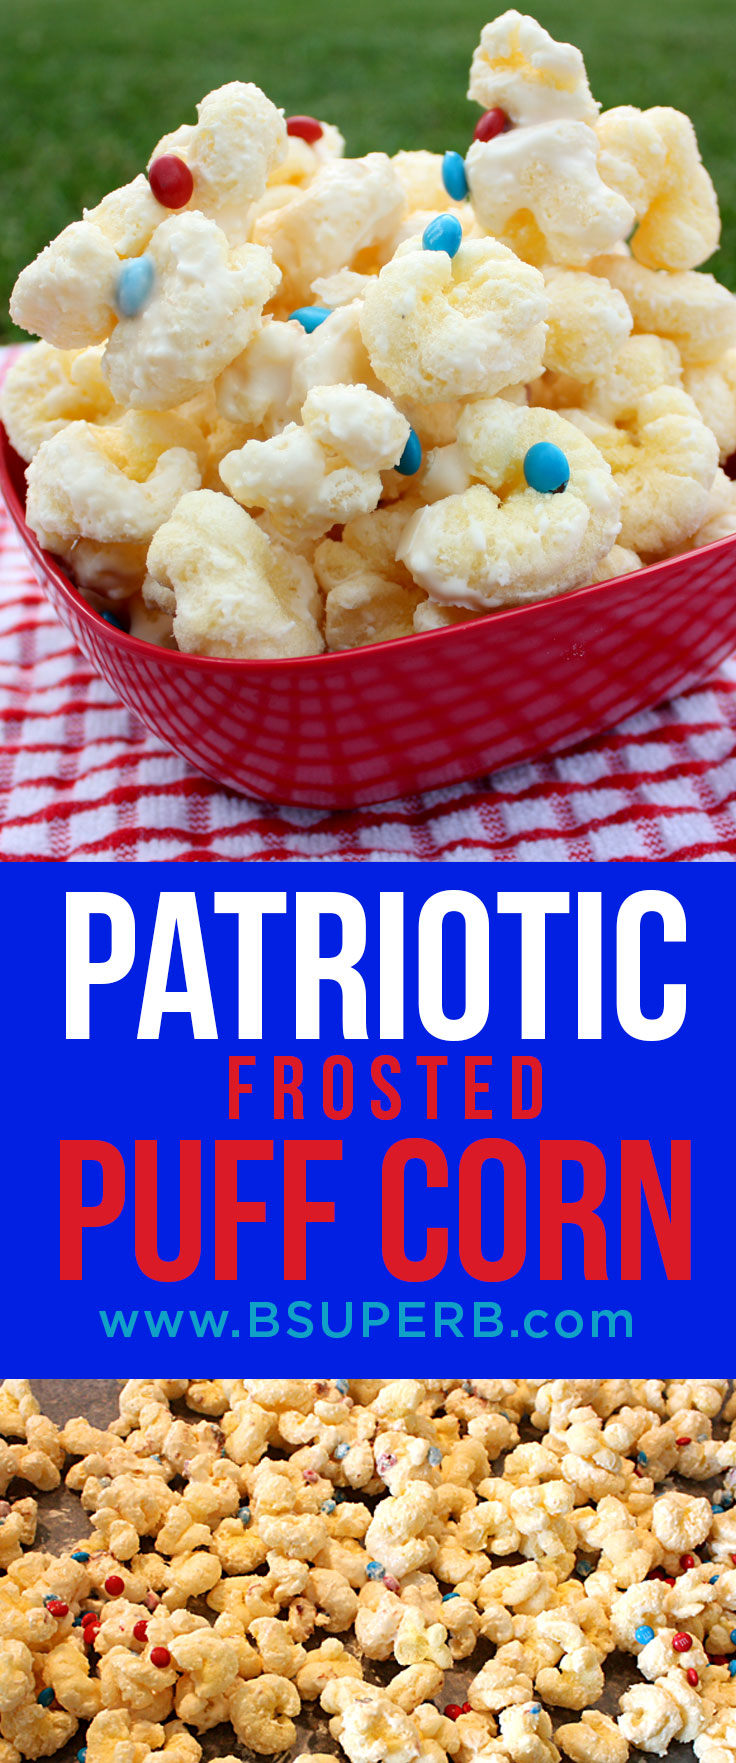 Patriotic Frosted Puffcorn